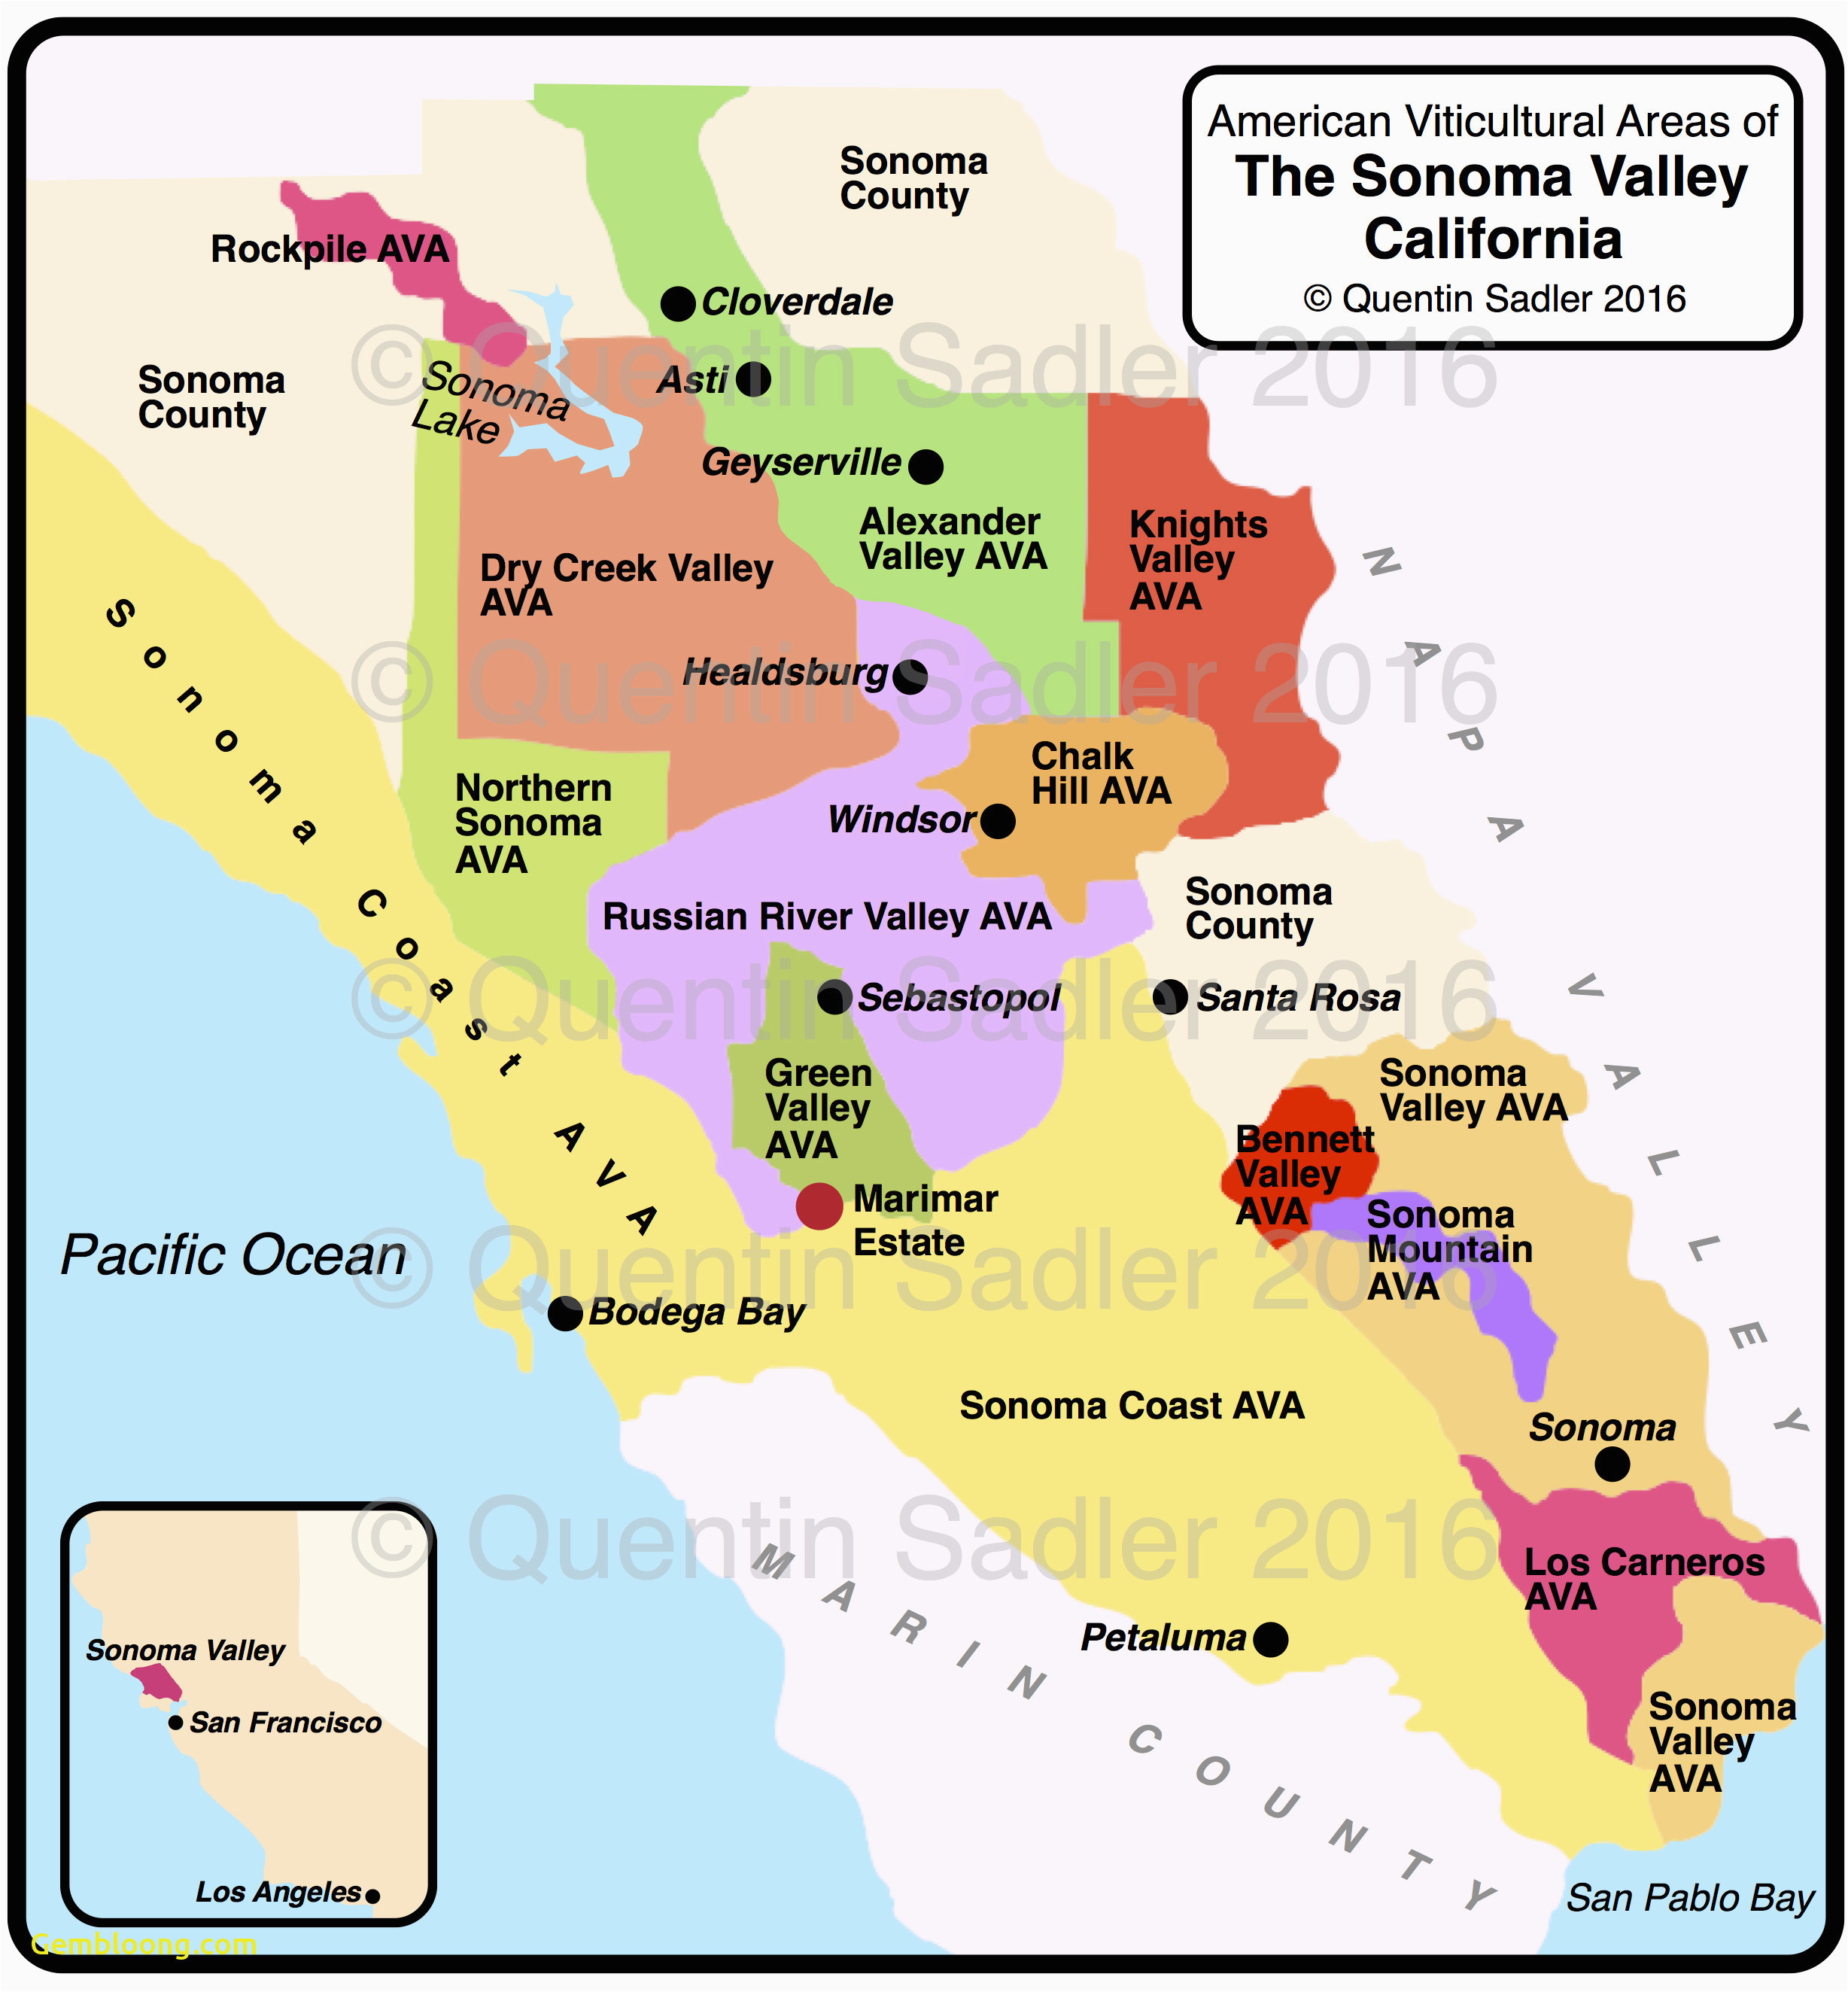 Sonoma Valley California Map sonoma County California Map Fresh Map See where Wildfires are